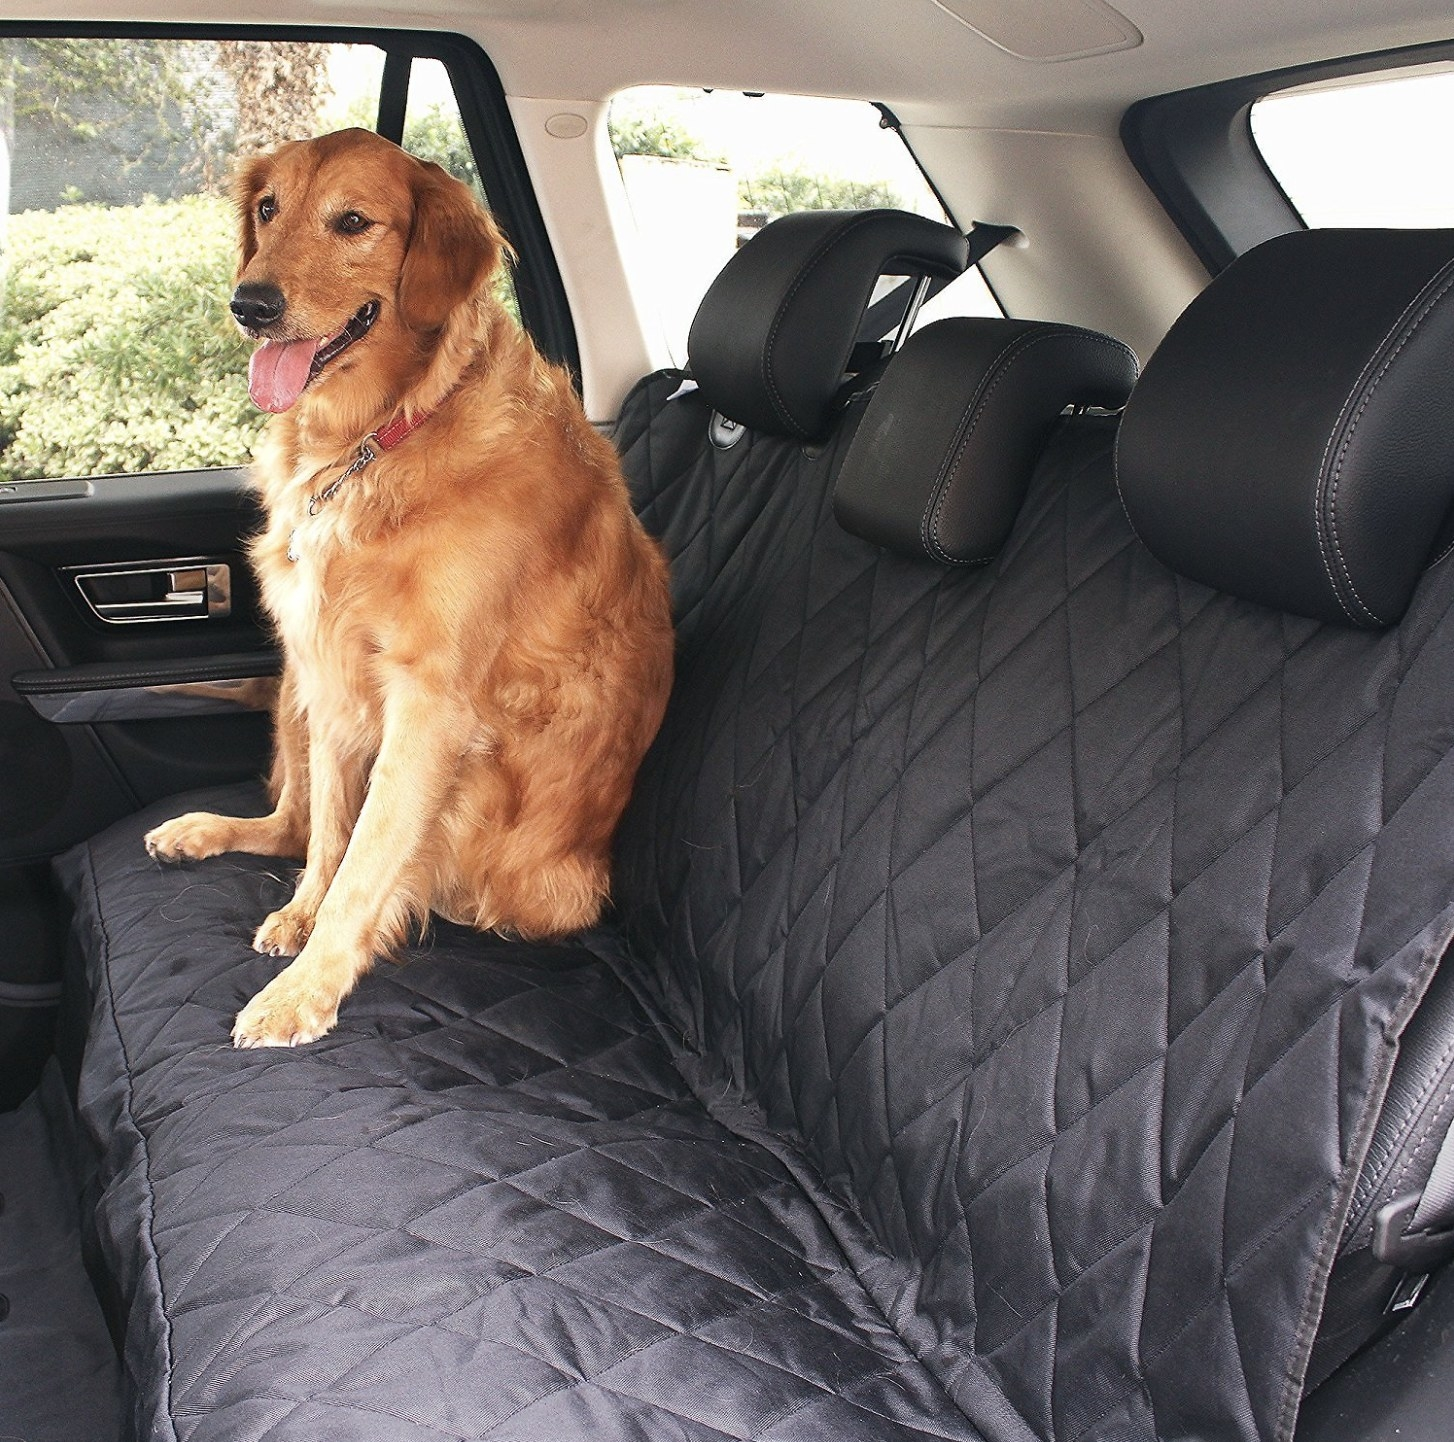 A dog sitting in the backseat of a car with a protective cover on the seats